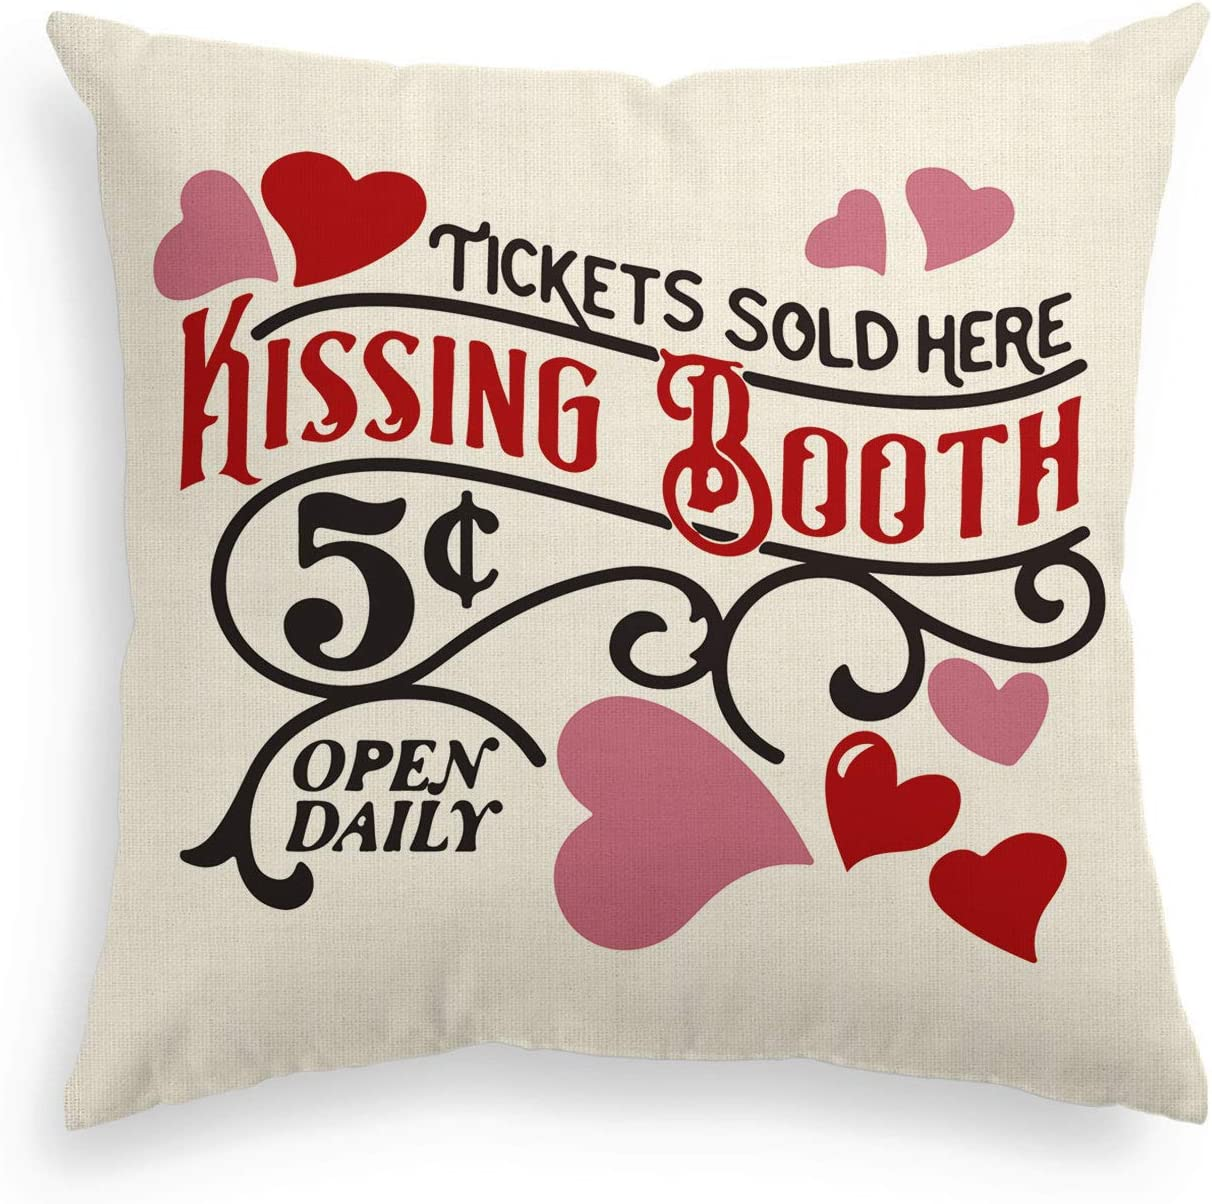 AVOIN Valentine's Day Kissing Booth Throw Pillow Cover Love Heart, 18 x 18 Inch Holiday Anniversary Wedding Cushion Case Decoration for Sofa Couch